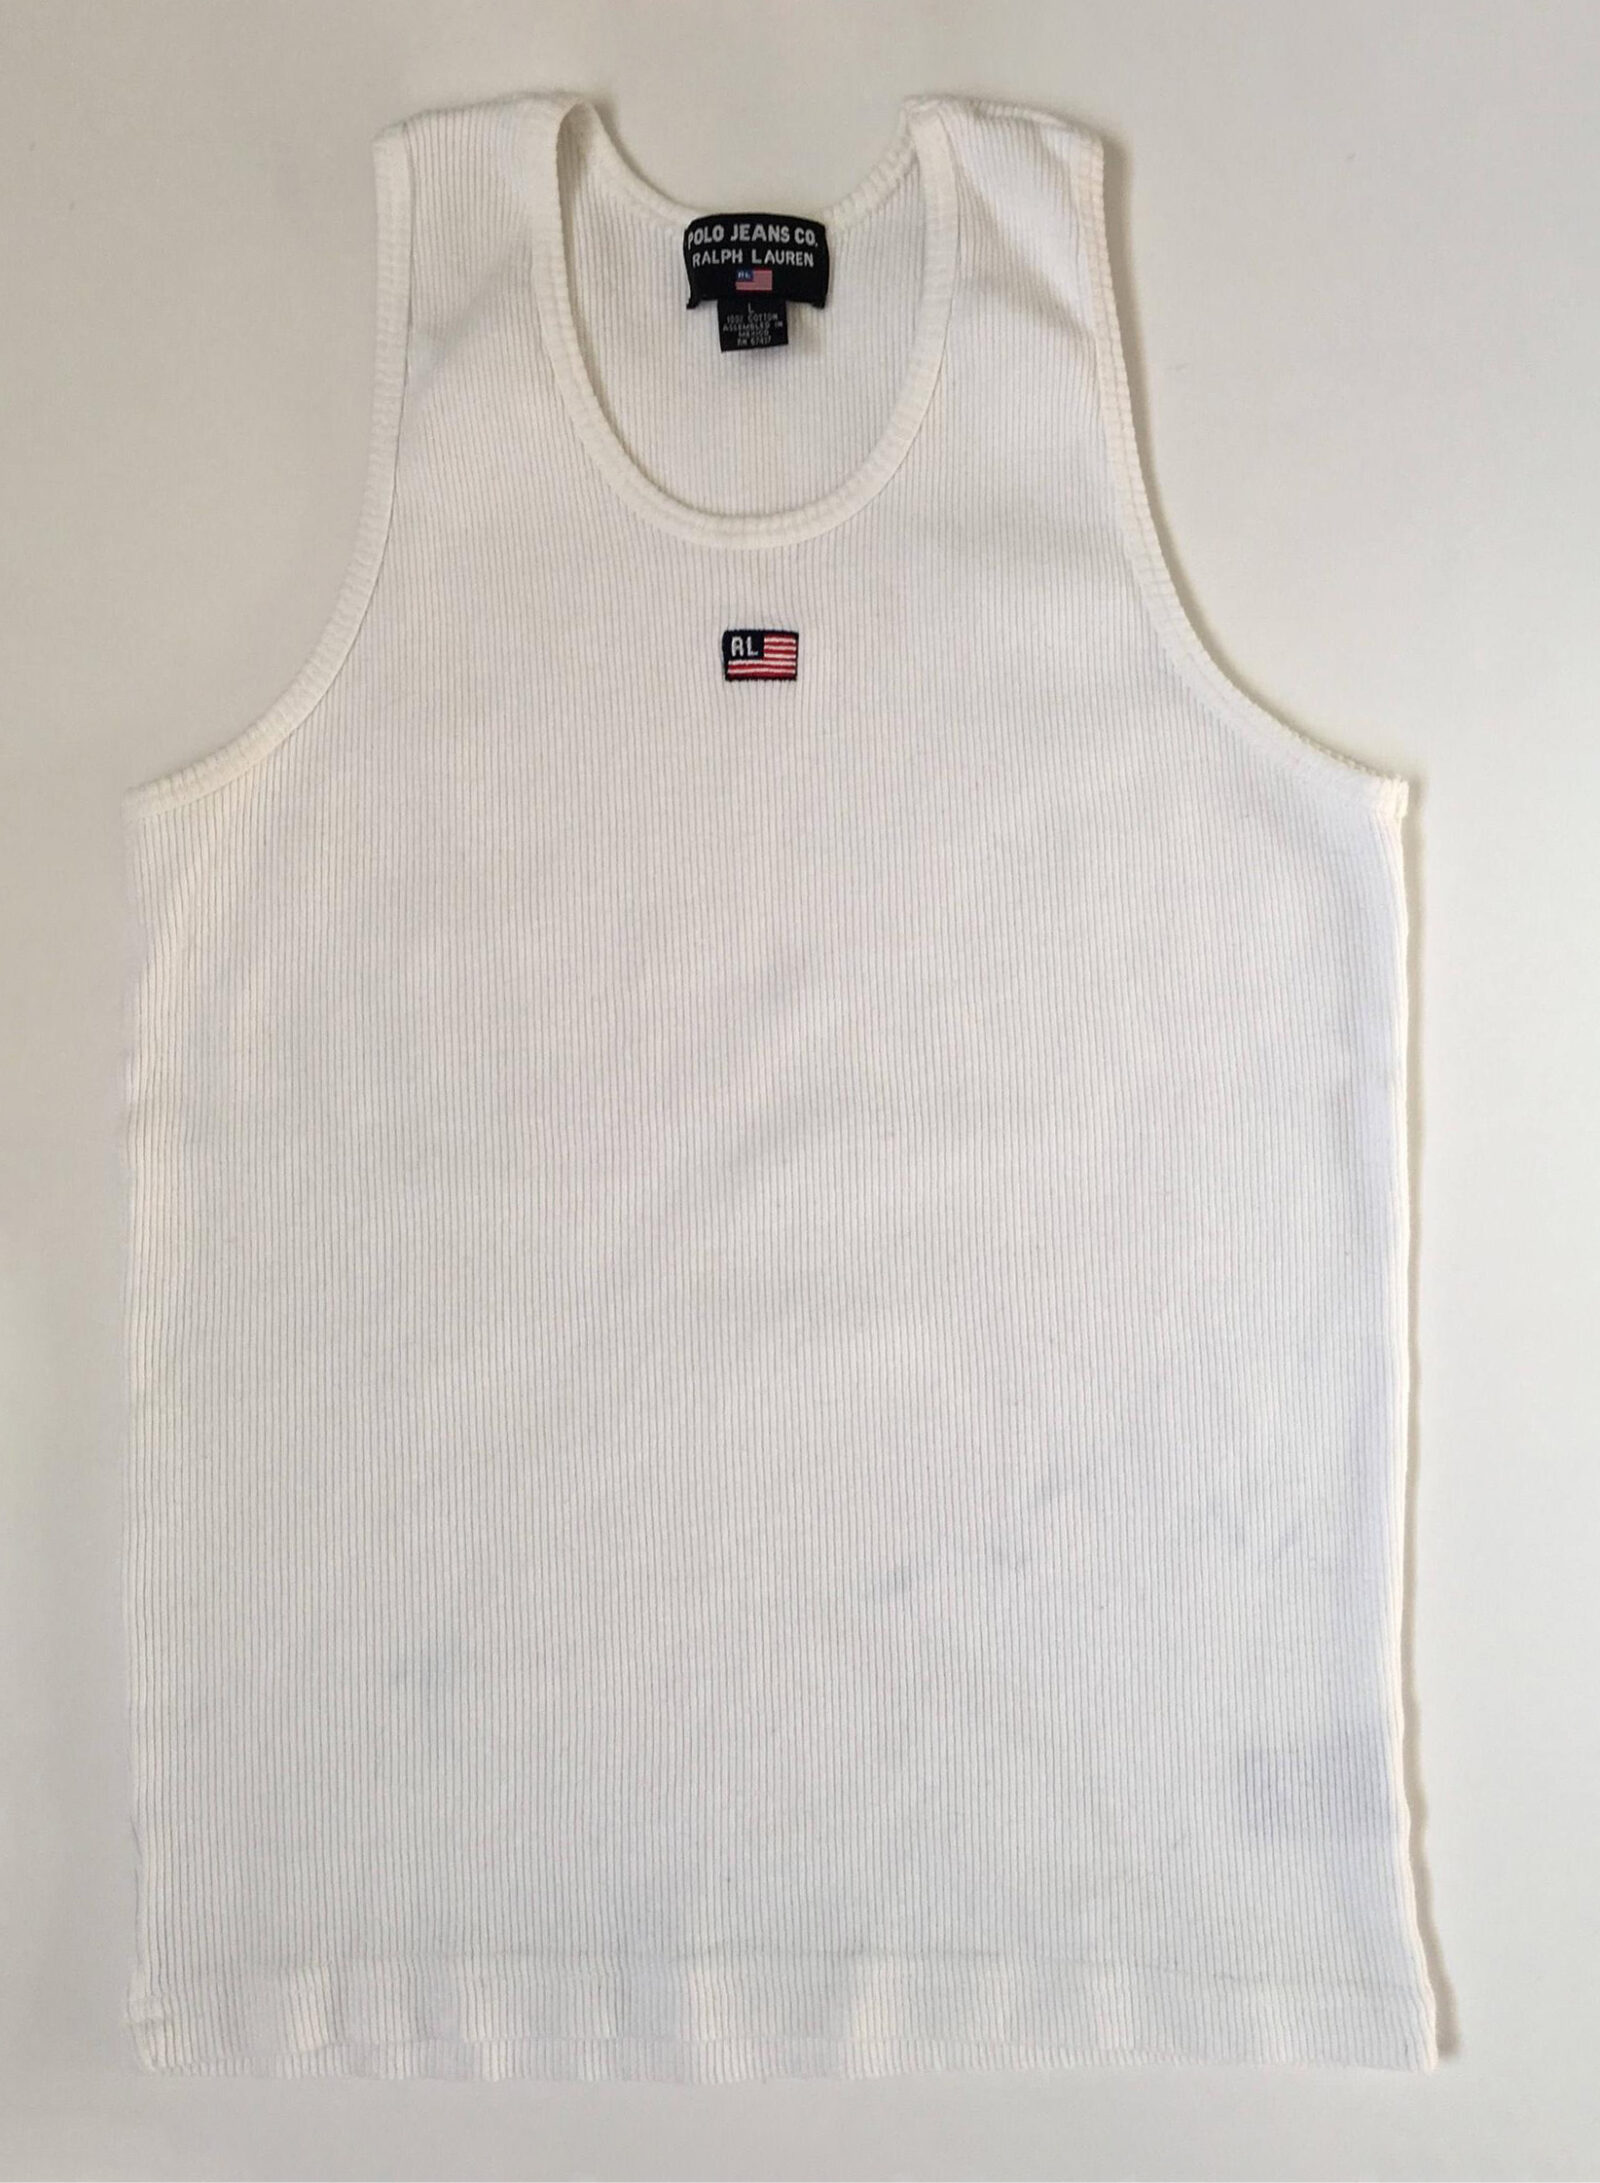 dc reco 1990s POLO RALPH LAUREN Embroidered Logo Vintage Ribbed Tank Top1990s POLO RALPH LAUREN Embroidered Logo Vintage Ribbed Tank Top